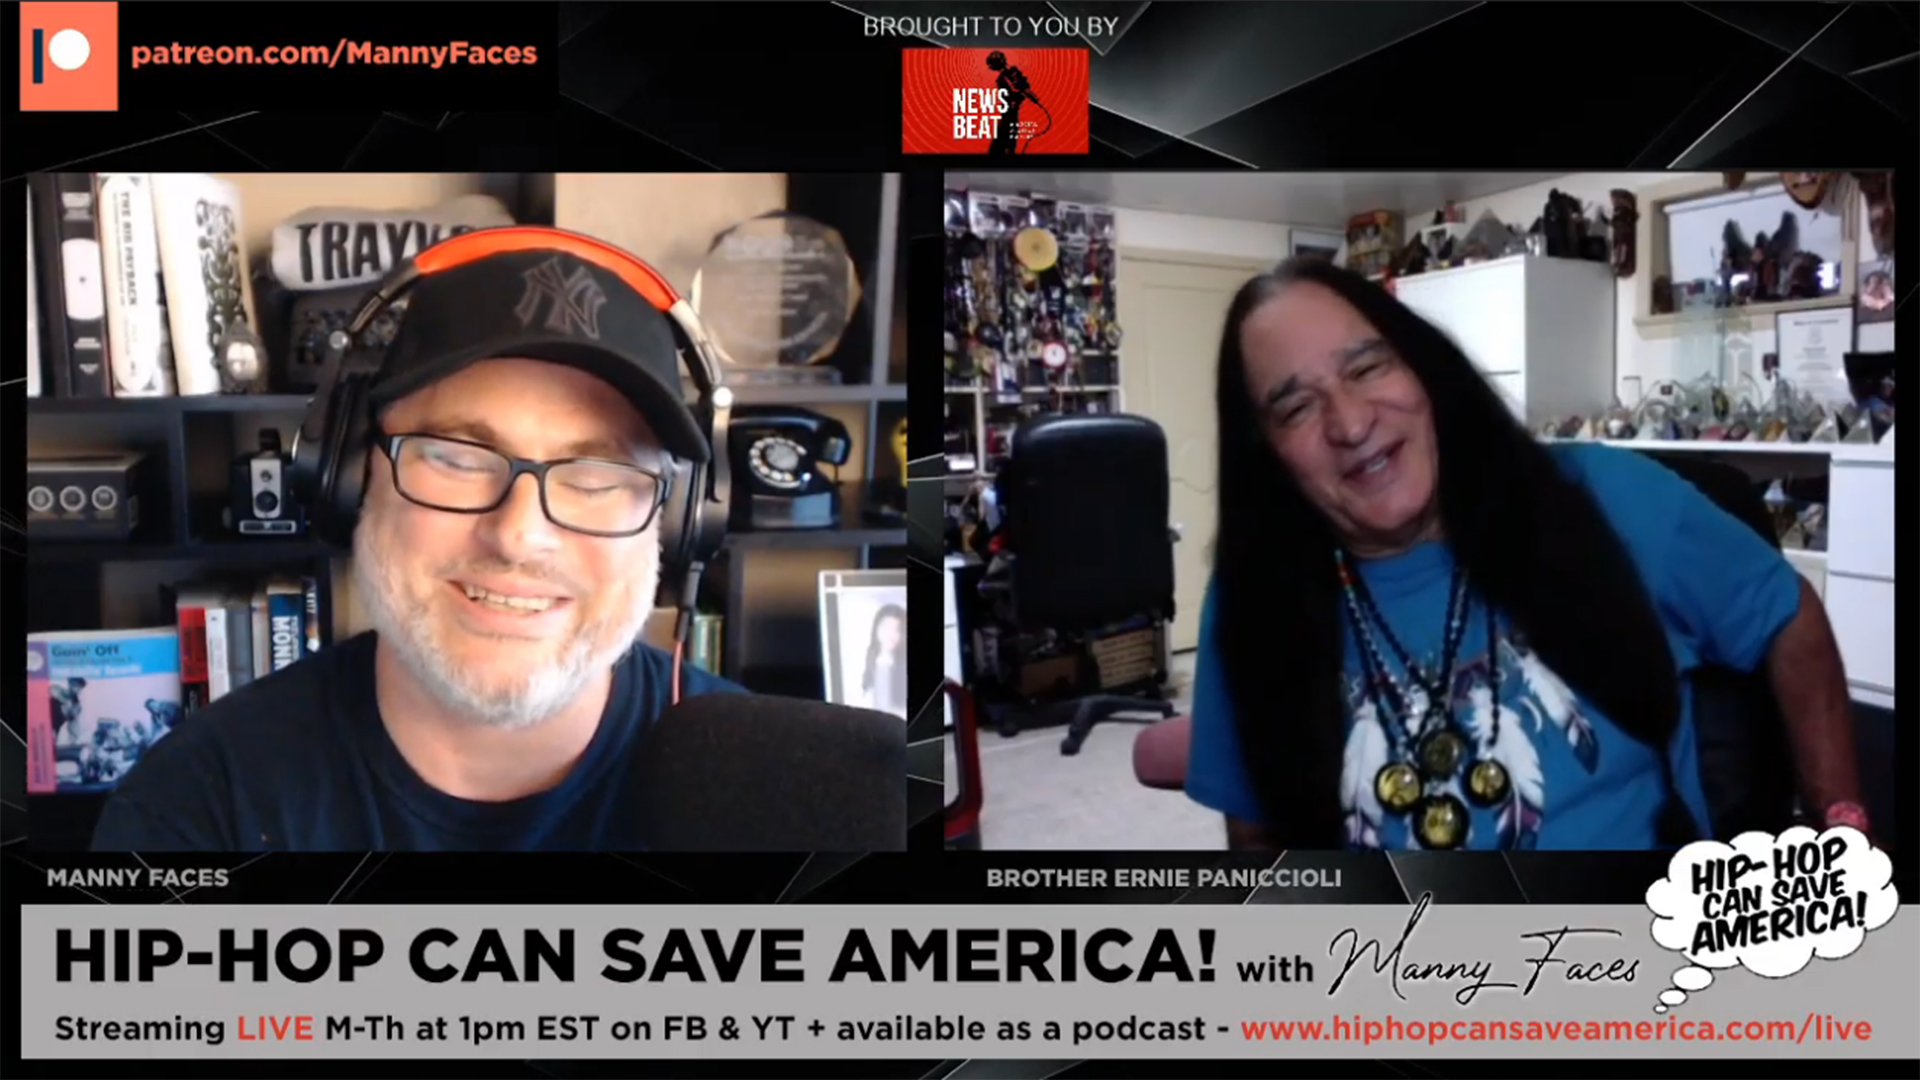 Ernie Paniccioli interview - Hip-Hop Can Save America! podcast